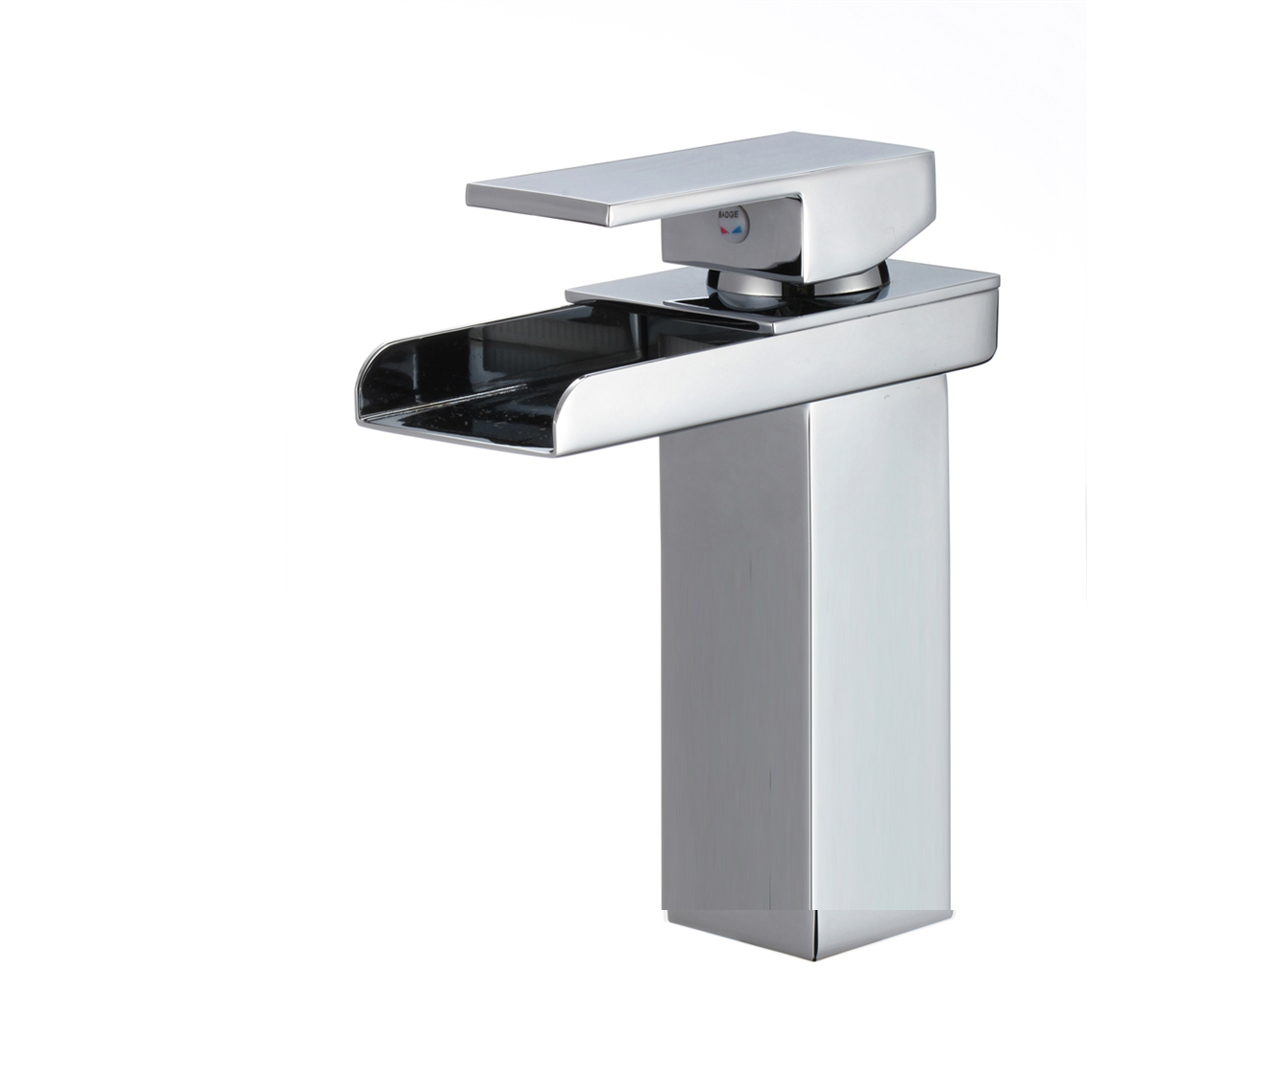 Avignon Single Handle Deck Mounted Bathroom Sink Faucet